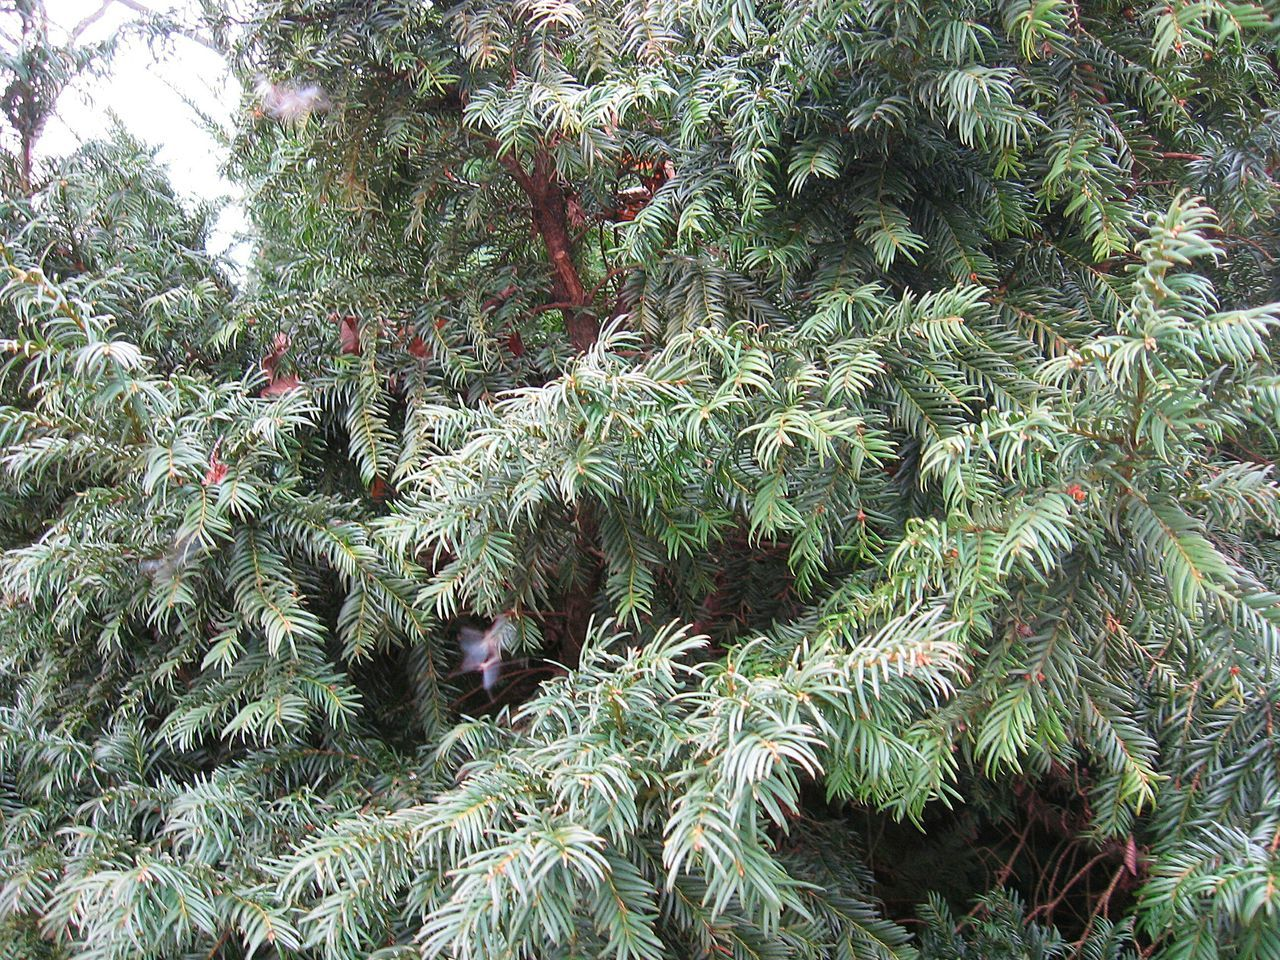 growth, green color, nature, plant, tree, needle - plant part, pine tree, day, outdoors, no people, cold temperature, beauty in nature, winter, branch, close-up